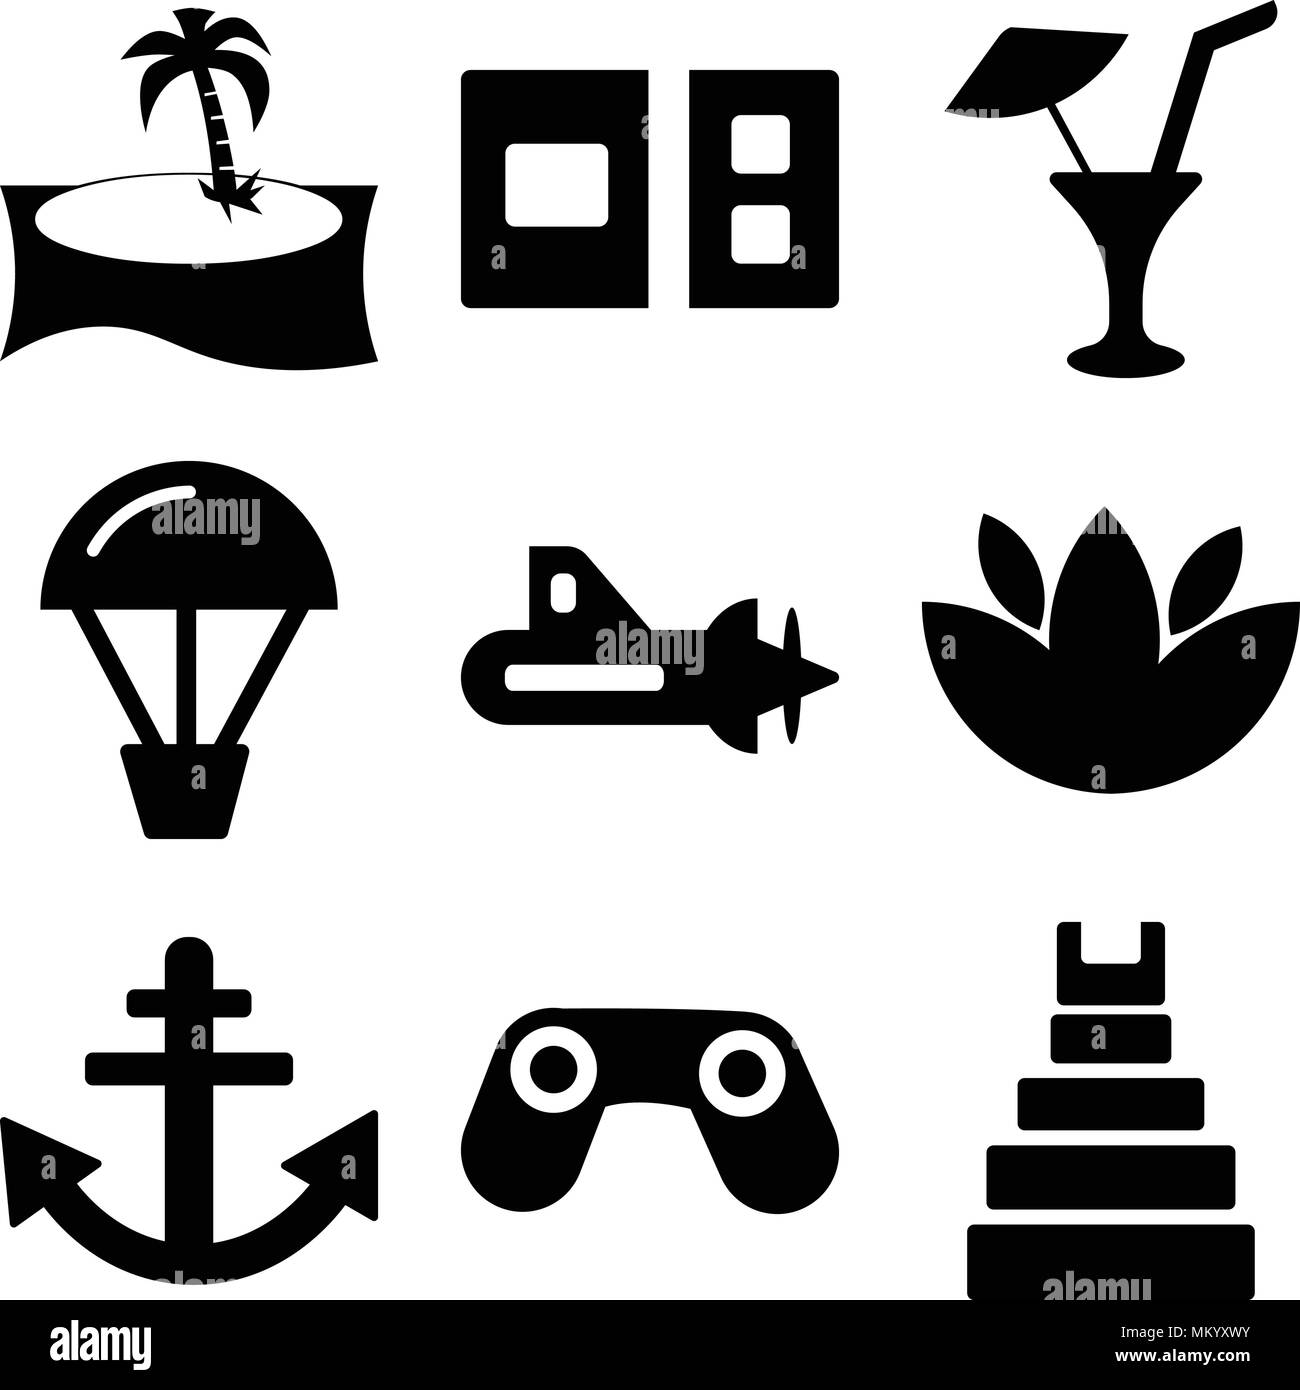 Set Of 9 simple editable icons such as Teotihuacan, Big Binocoulars, Anchor, Flower, Submarine with Propeller, Hot air balloon, Limonade Drop, Postcar Stock Vector